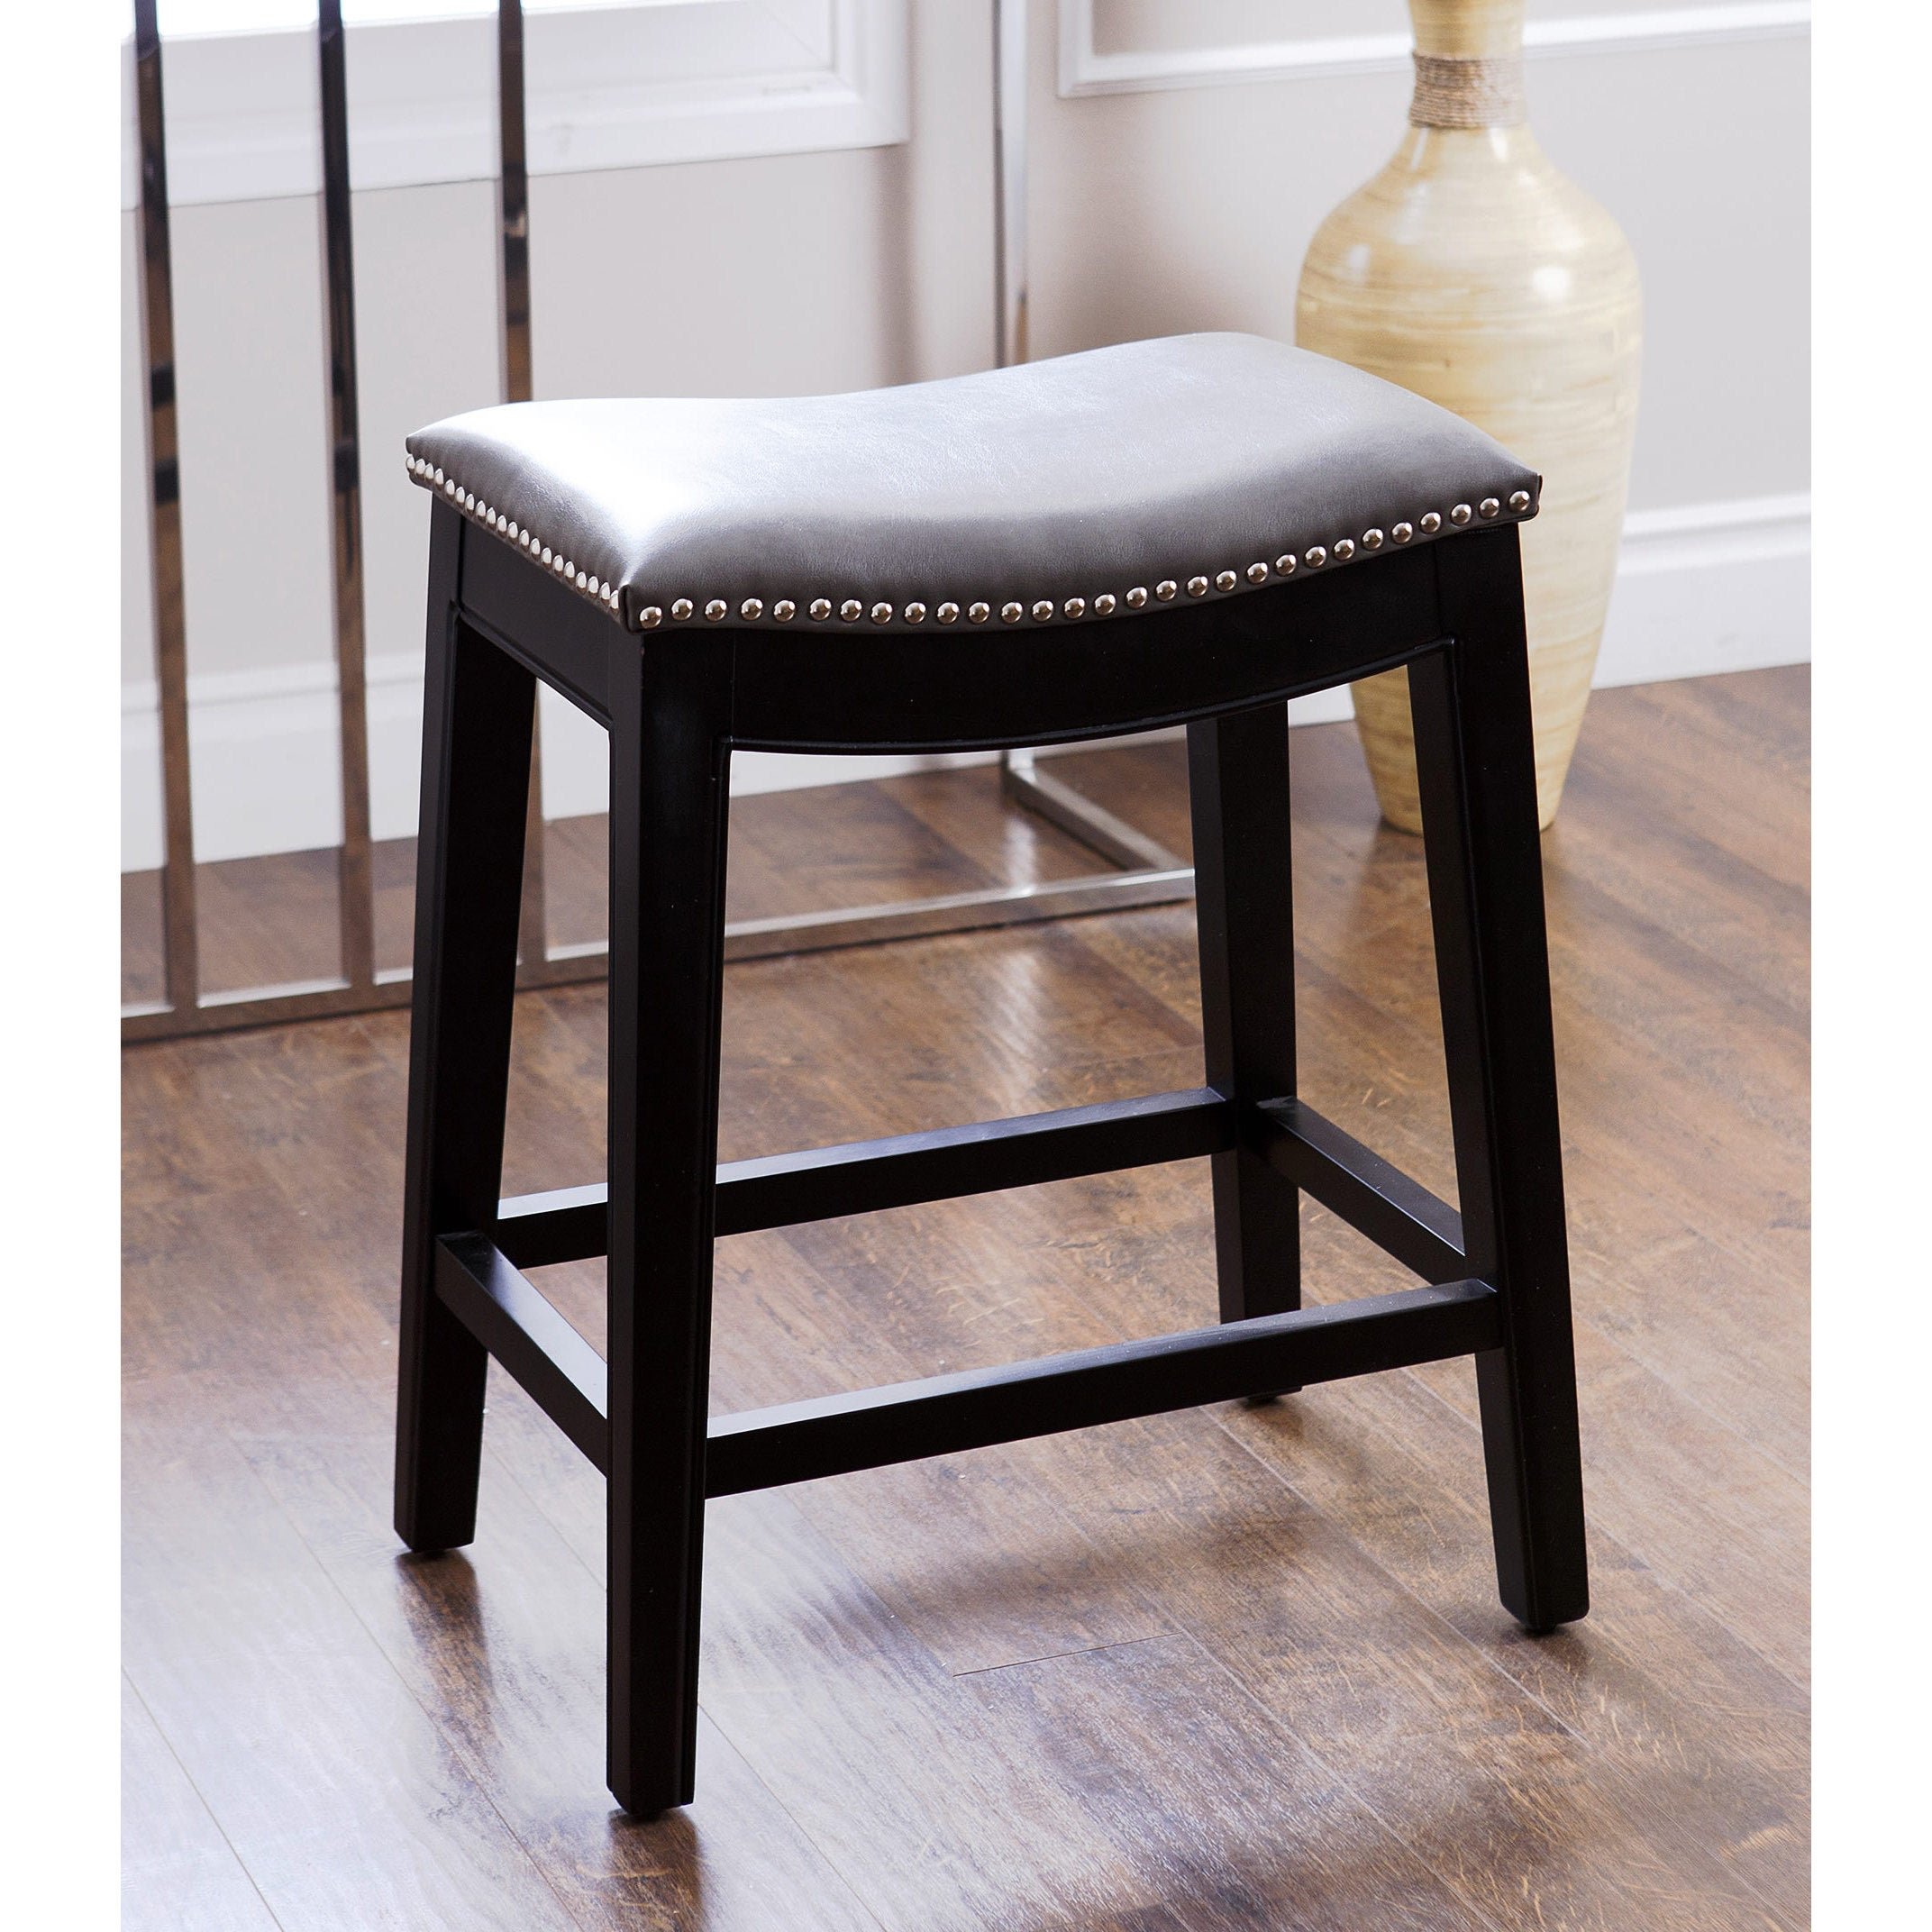 Abbyson Rivoli Grey Leather Nailhead Trim Counter Stool Ebay